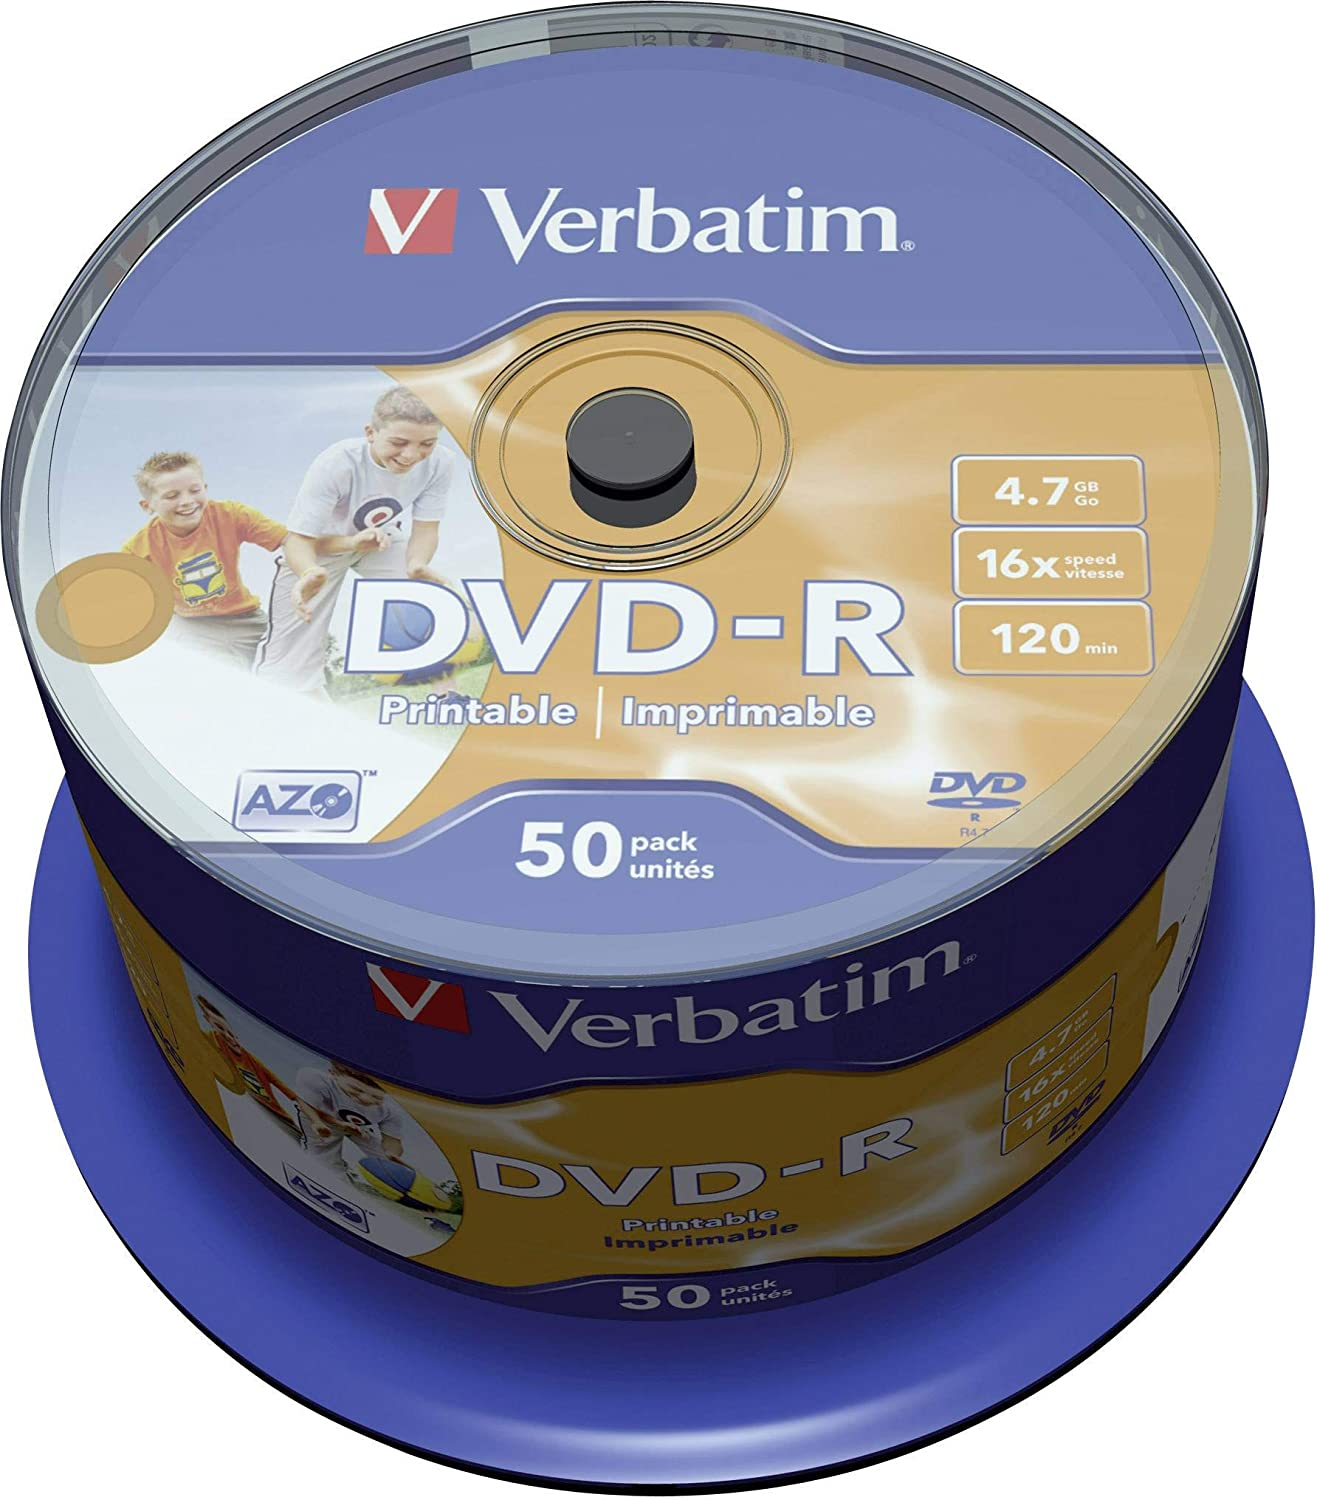 Dvd R 16x Bulk 4 7gb Wide Ink Print Non Id Brand 50 Pack Buy Dvd R 16x Bulk 4 7gb Wide Ink Print Non Id Brand 50 Pack Online At Low Price In India Amazon In